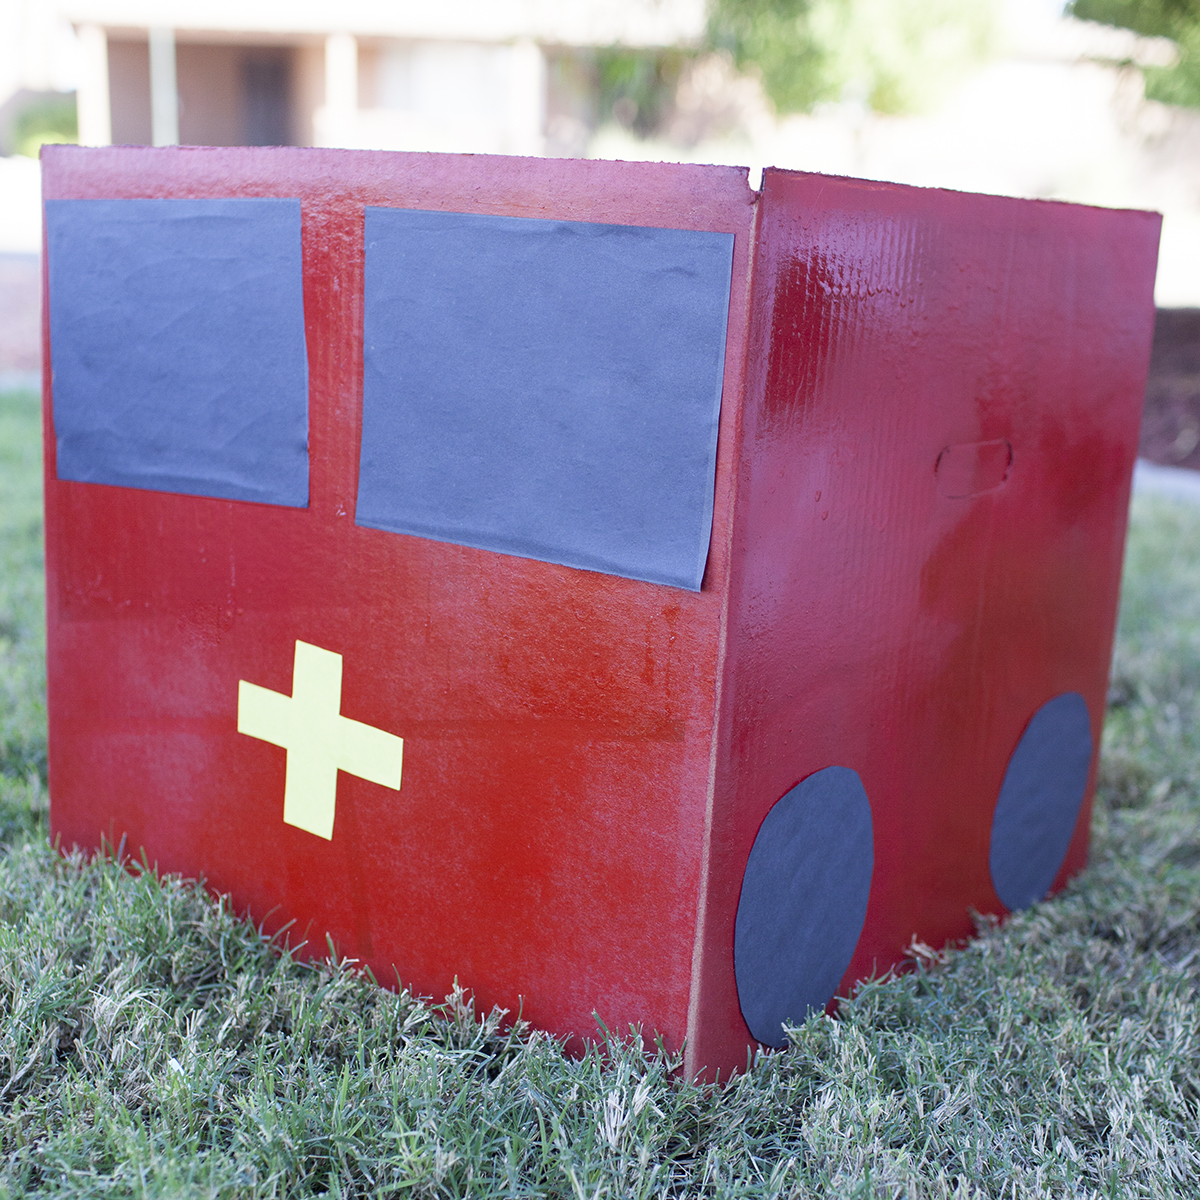 Cardboard box fire truck costume Halloween